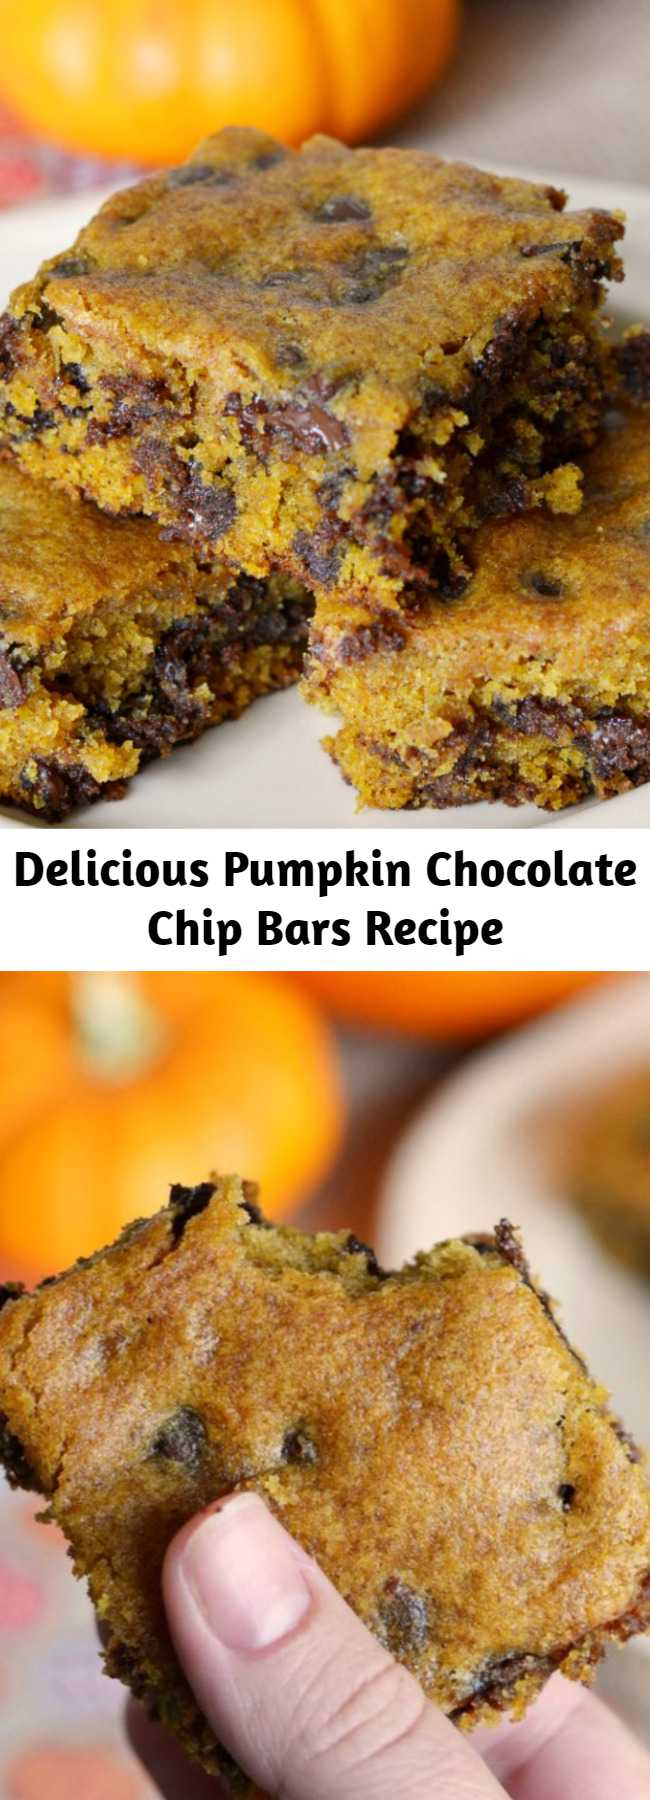 Delicious Pumpkin Chocolate Chip Bars Recipe - Soft, chewy, and delicious, these pumpkin chocolate chip bars are a delicious fall dessert!